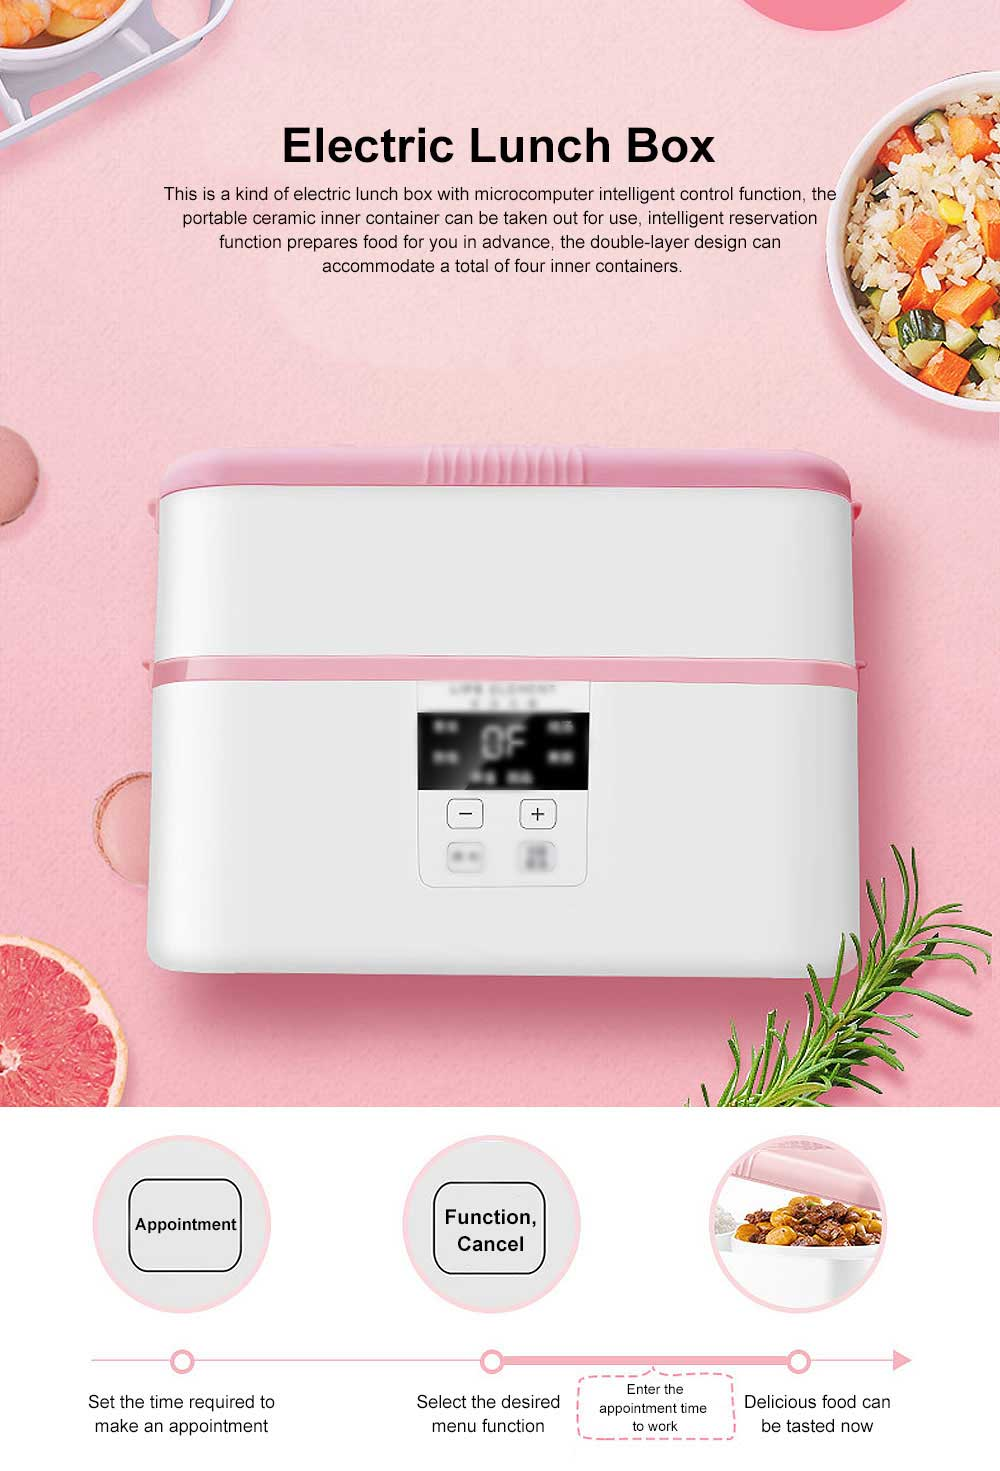 Electric Lunch Box Ceramic Intelligent Reservation Timing Lunch Box, Large Capacity Double-layer Heat Preservation Box 0